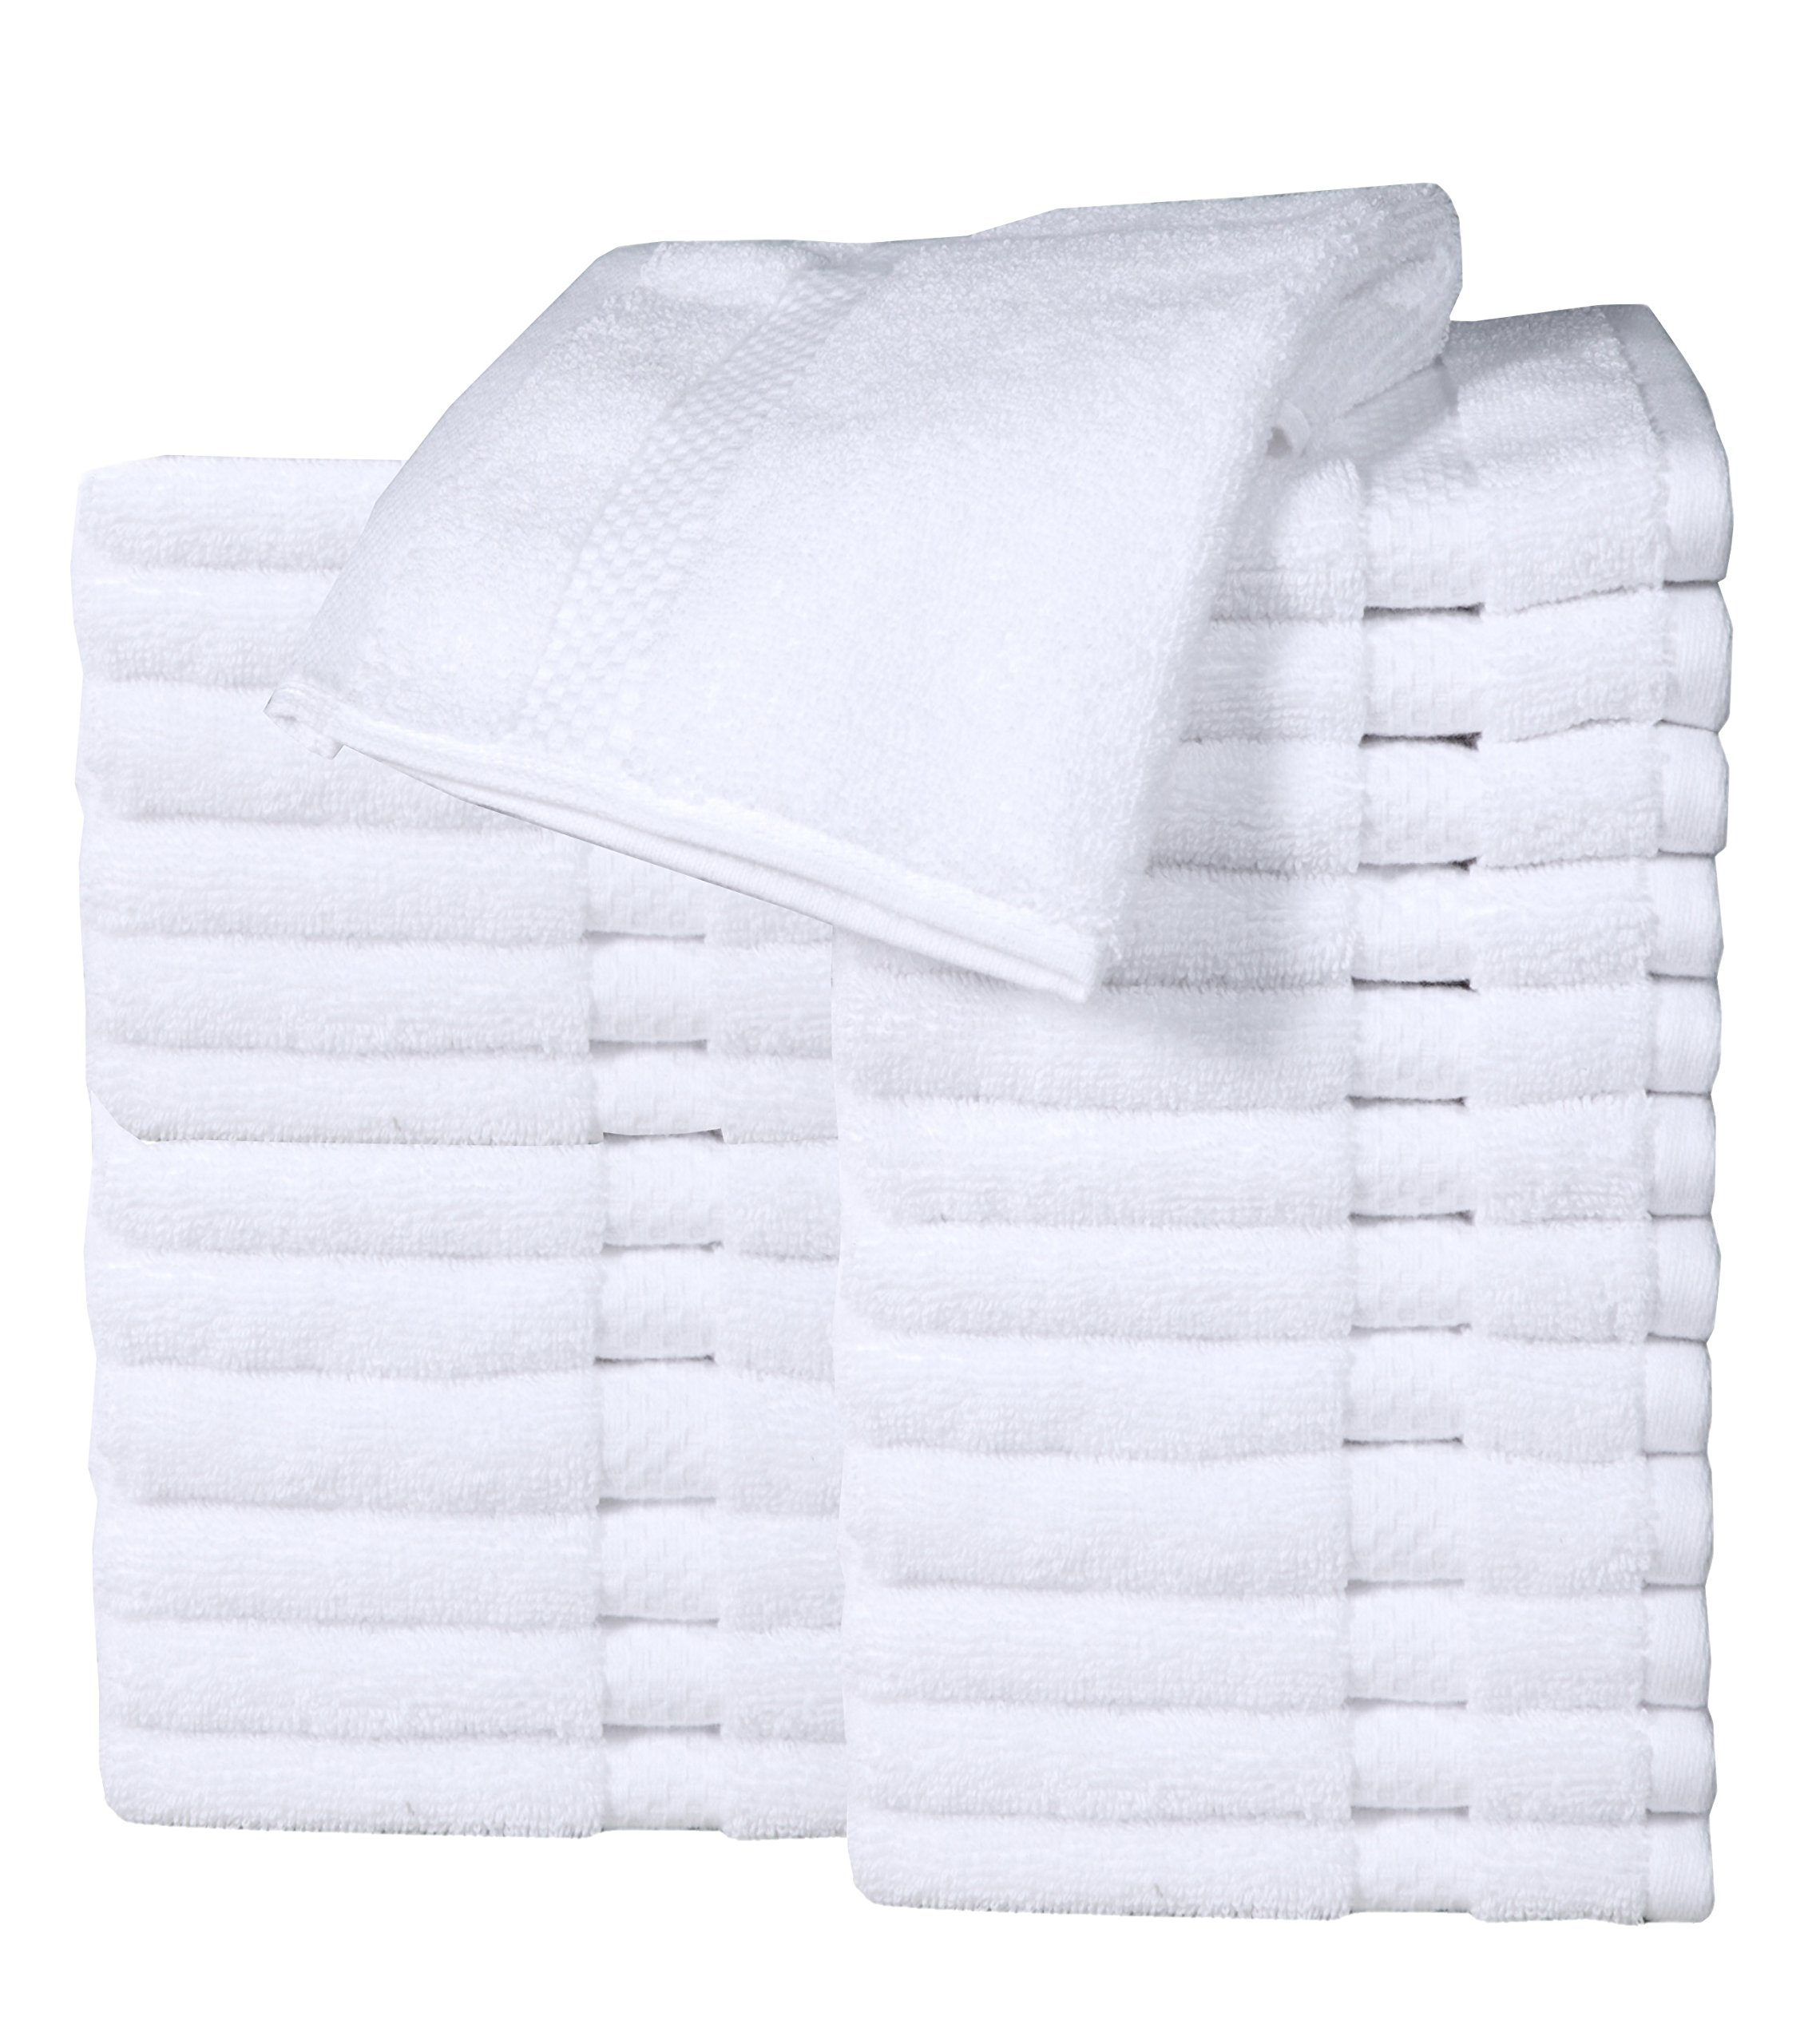 HomeLabels Luxury Cotton Washcloth Towel Set (24 Pack, White, 13''x13'') Zero Twist, Multi-purpose Extra Soft Fingertip towels, Highly Absorbent Face Cloths, Machine Washable Sport, and Workout Towels by HomeLabels